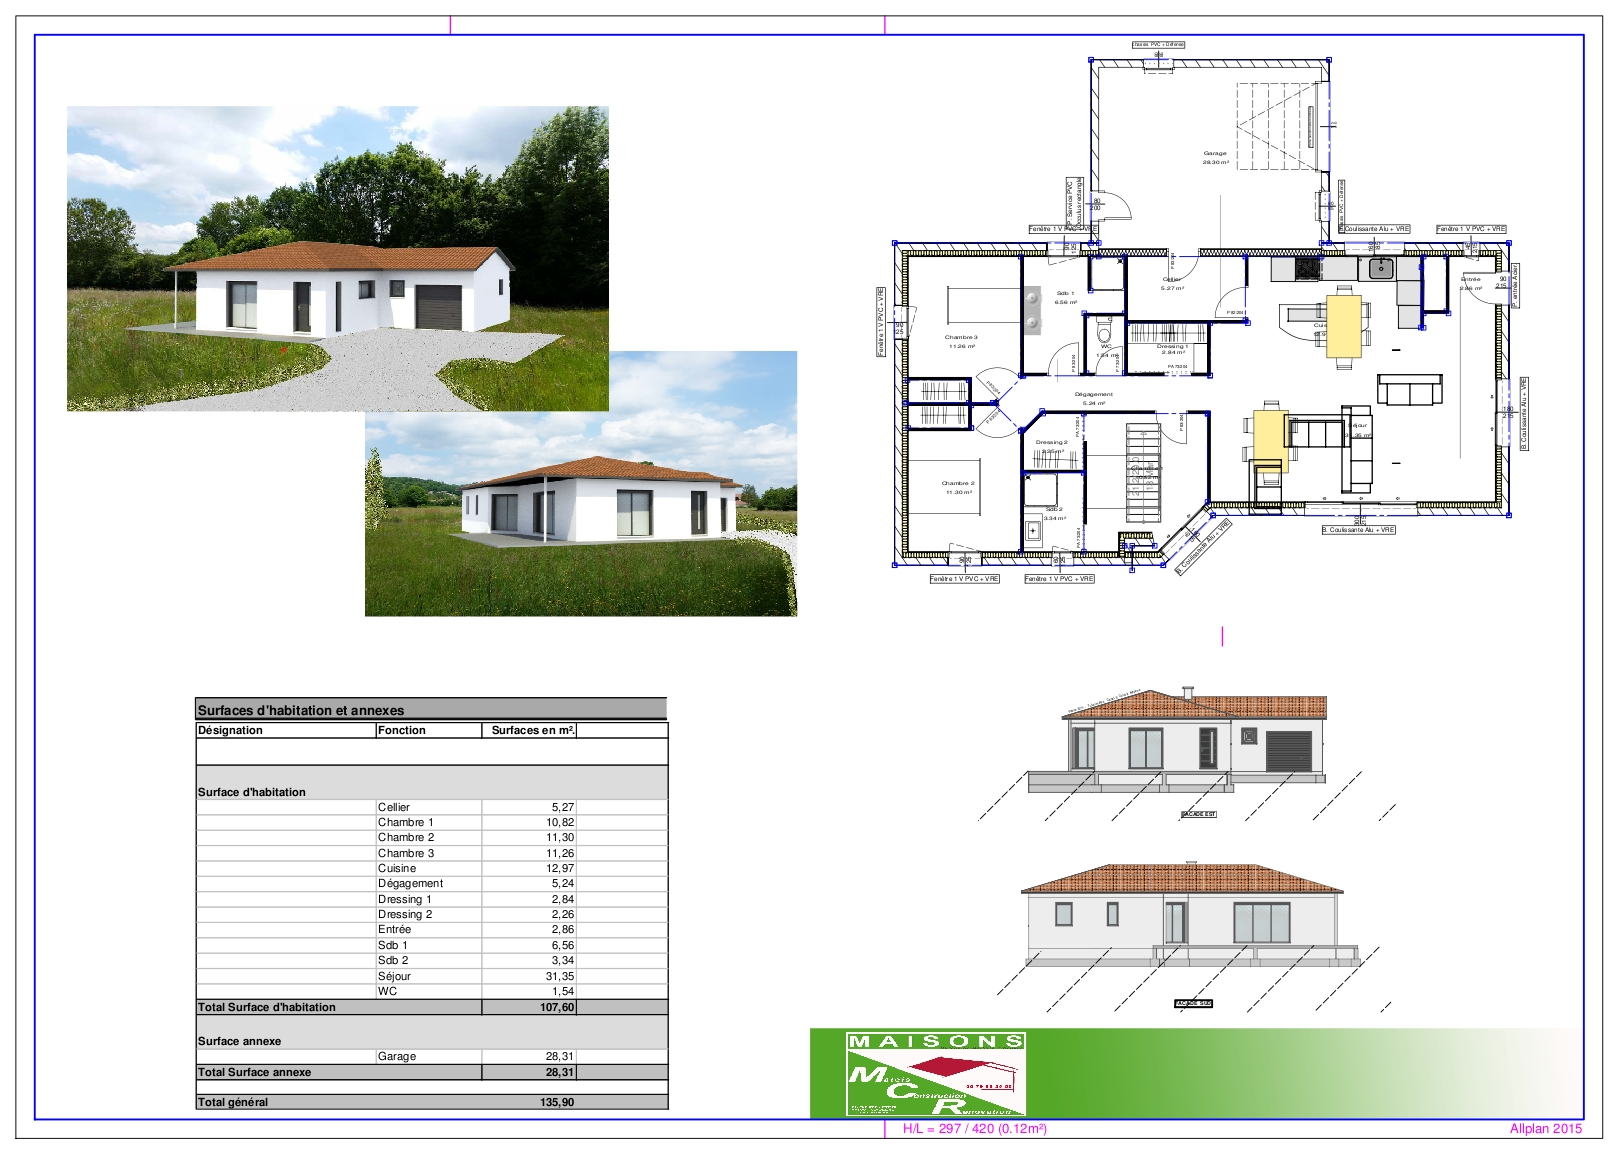 Application Pour Faire Des Plans Application Pour Faire Des Plans De Maison Application